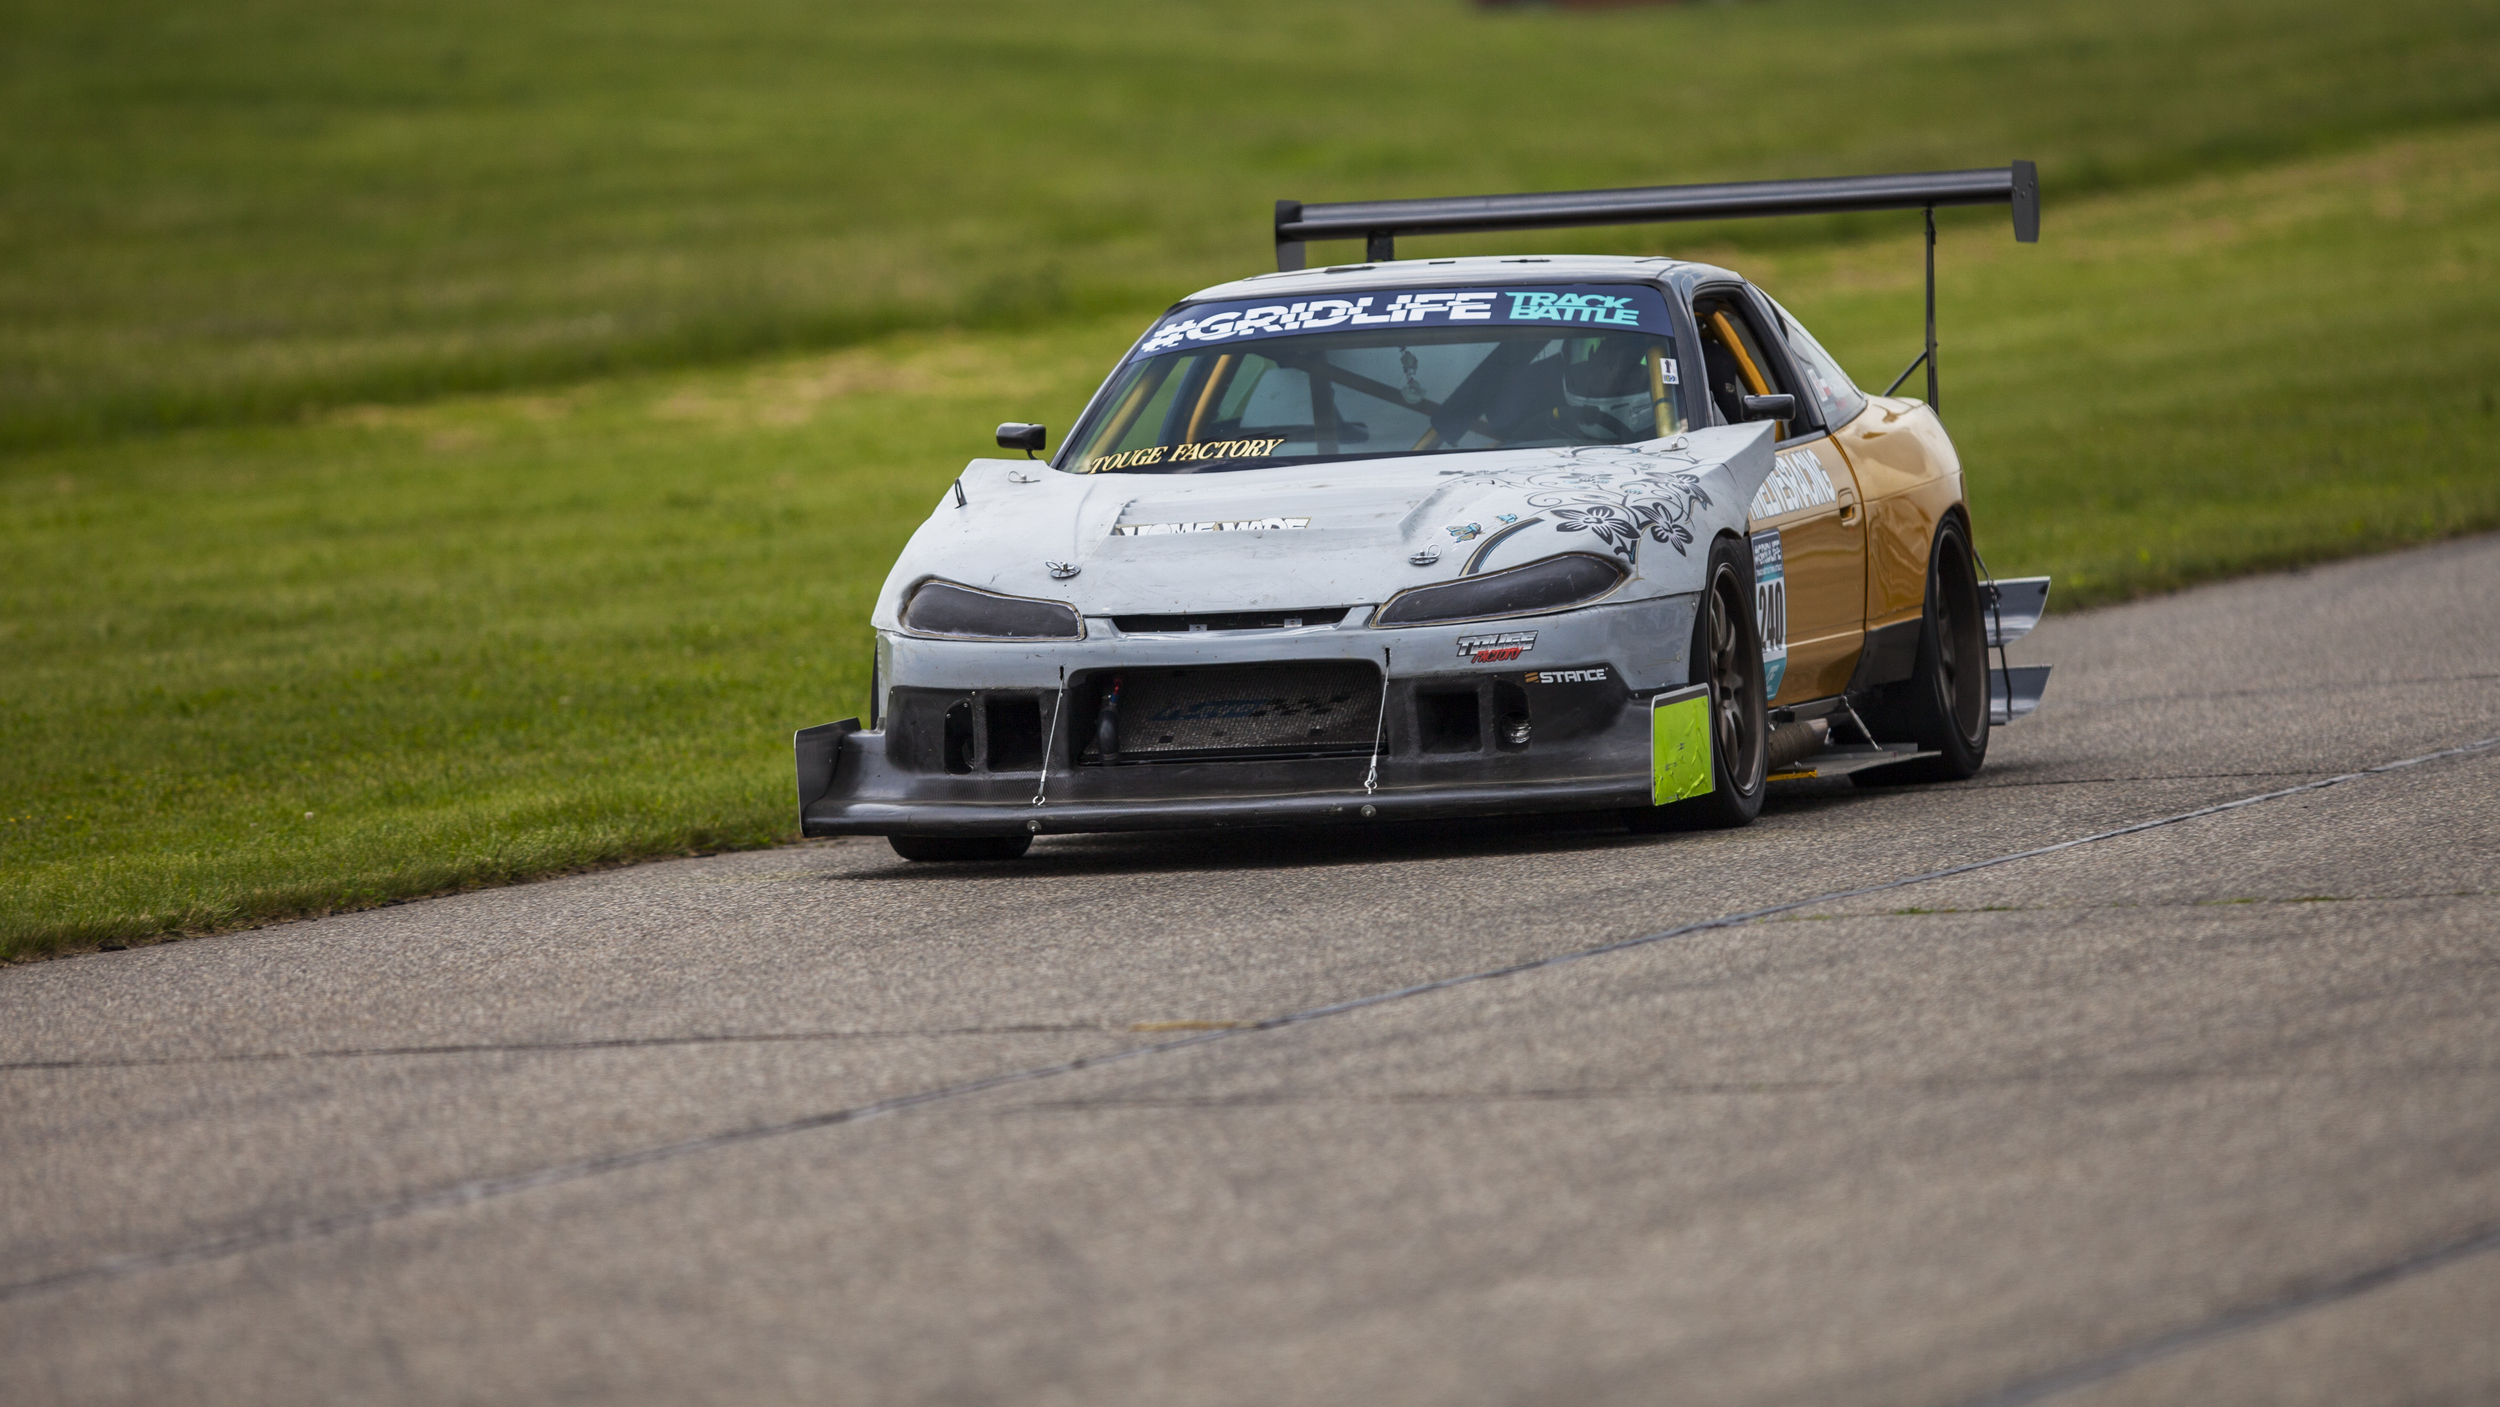 Ninelives Racing 's S13 will be back attacking time. Last year they seem to run into problem after problem with fueling this thing but last event of the season they seem to be hammered out. Look forward to seeing what this high downforce car can do.